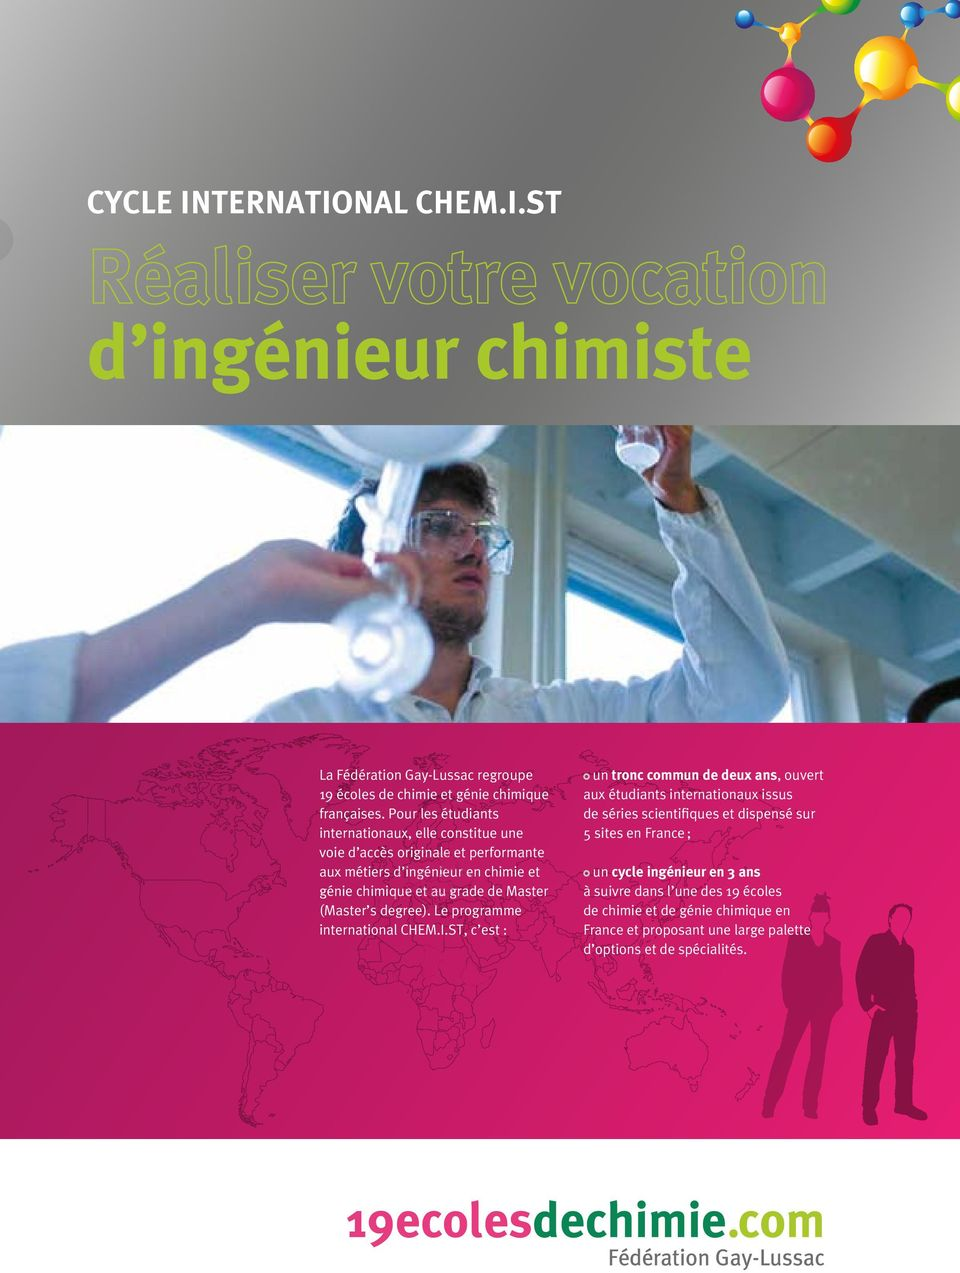 Master (Master s degree). Le programme international CHEM.I.